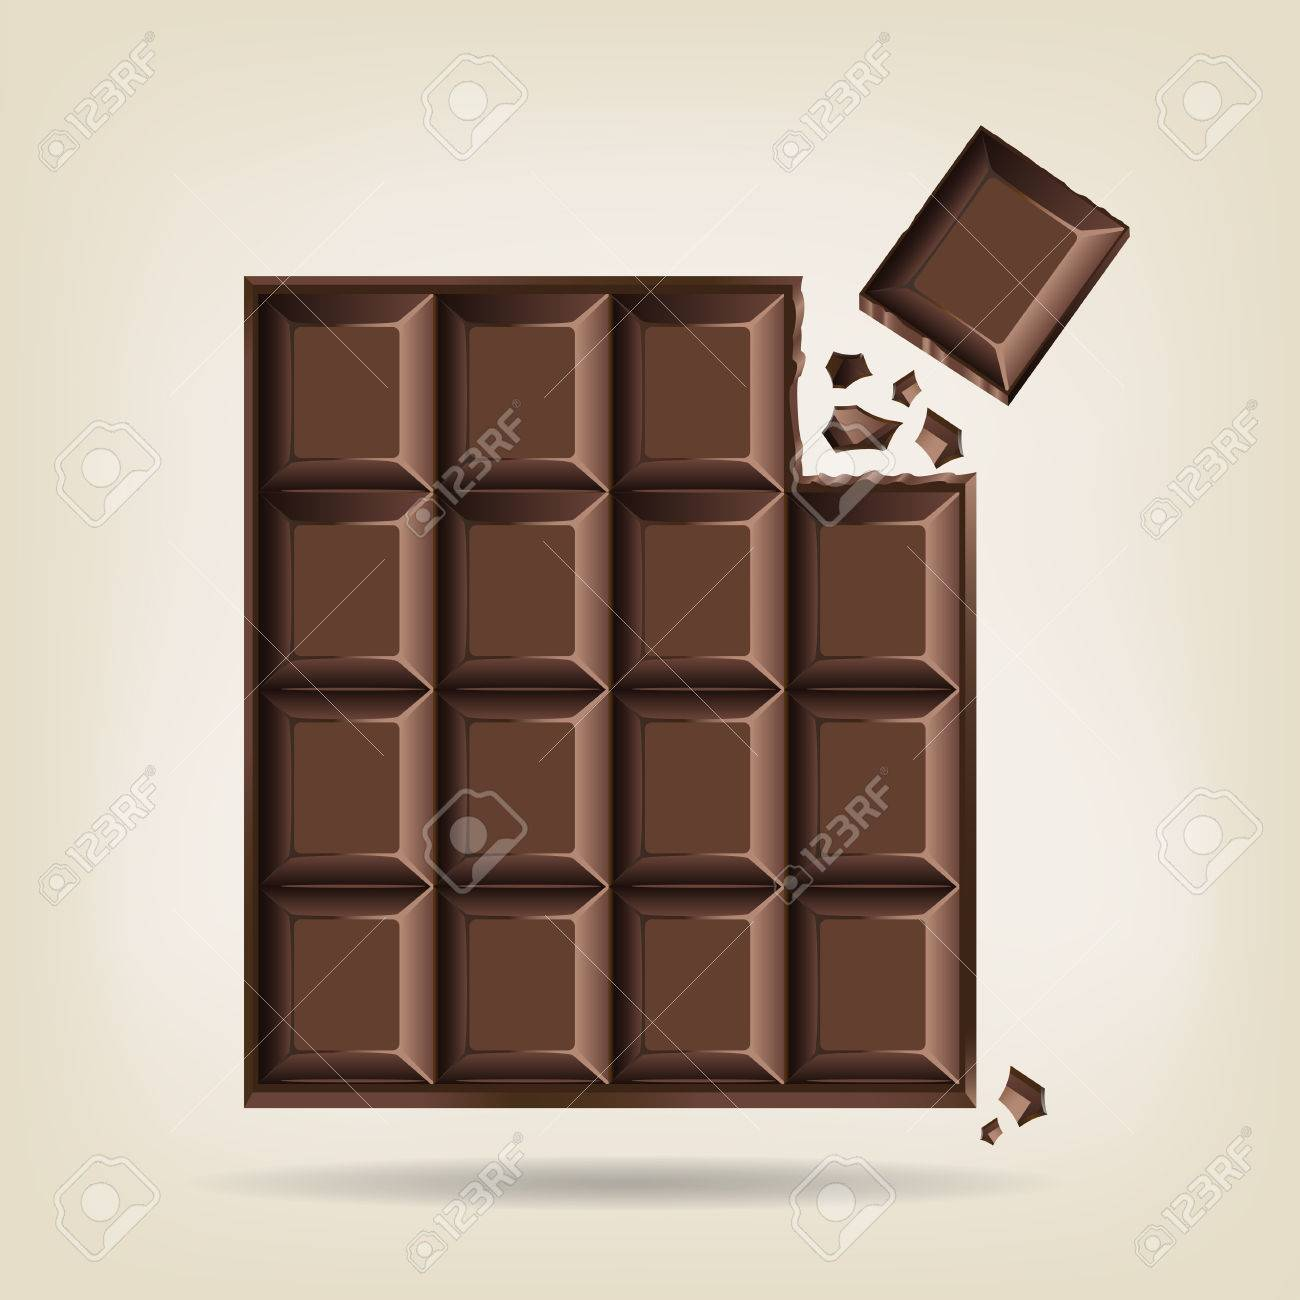 Unwrapped bar of chocolate with one corner square broken off with crumbs, vector illustration Stock Vector - 36806793